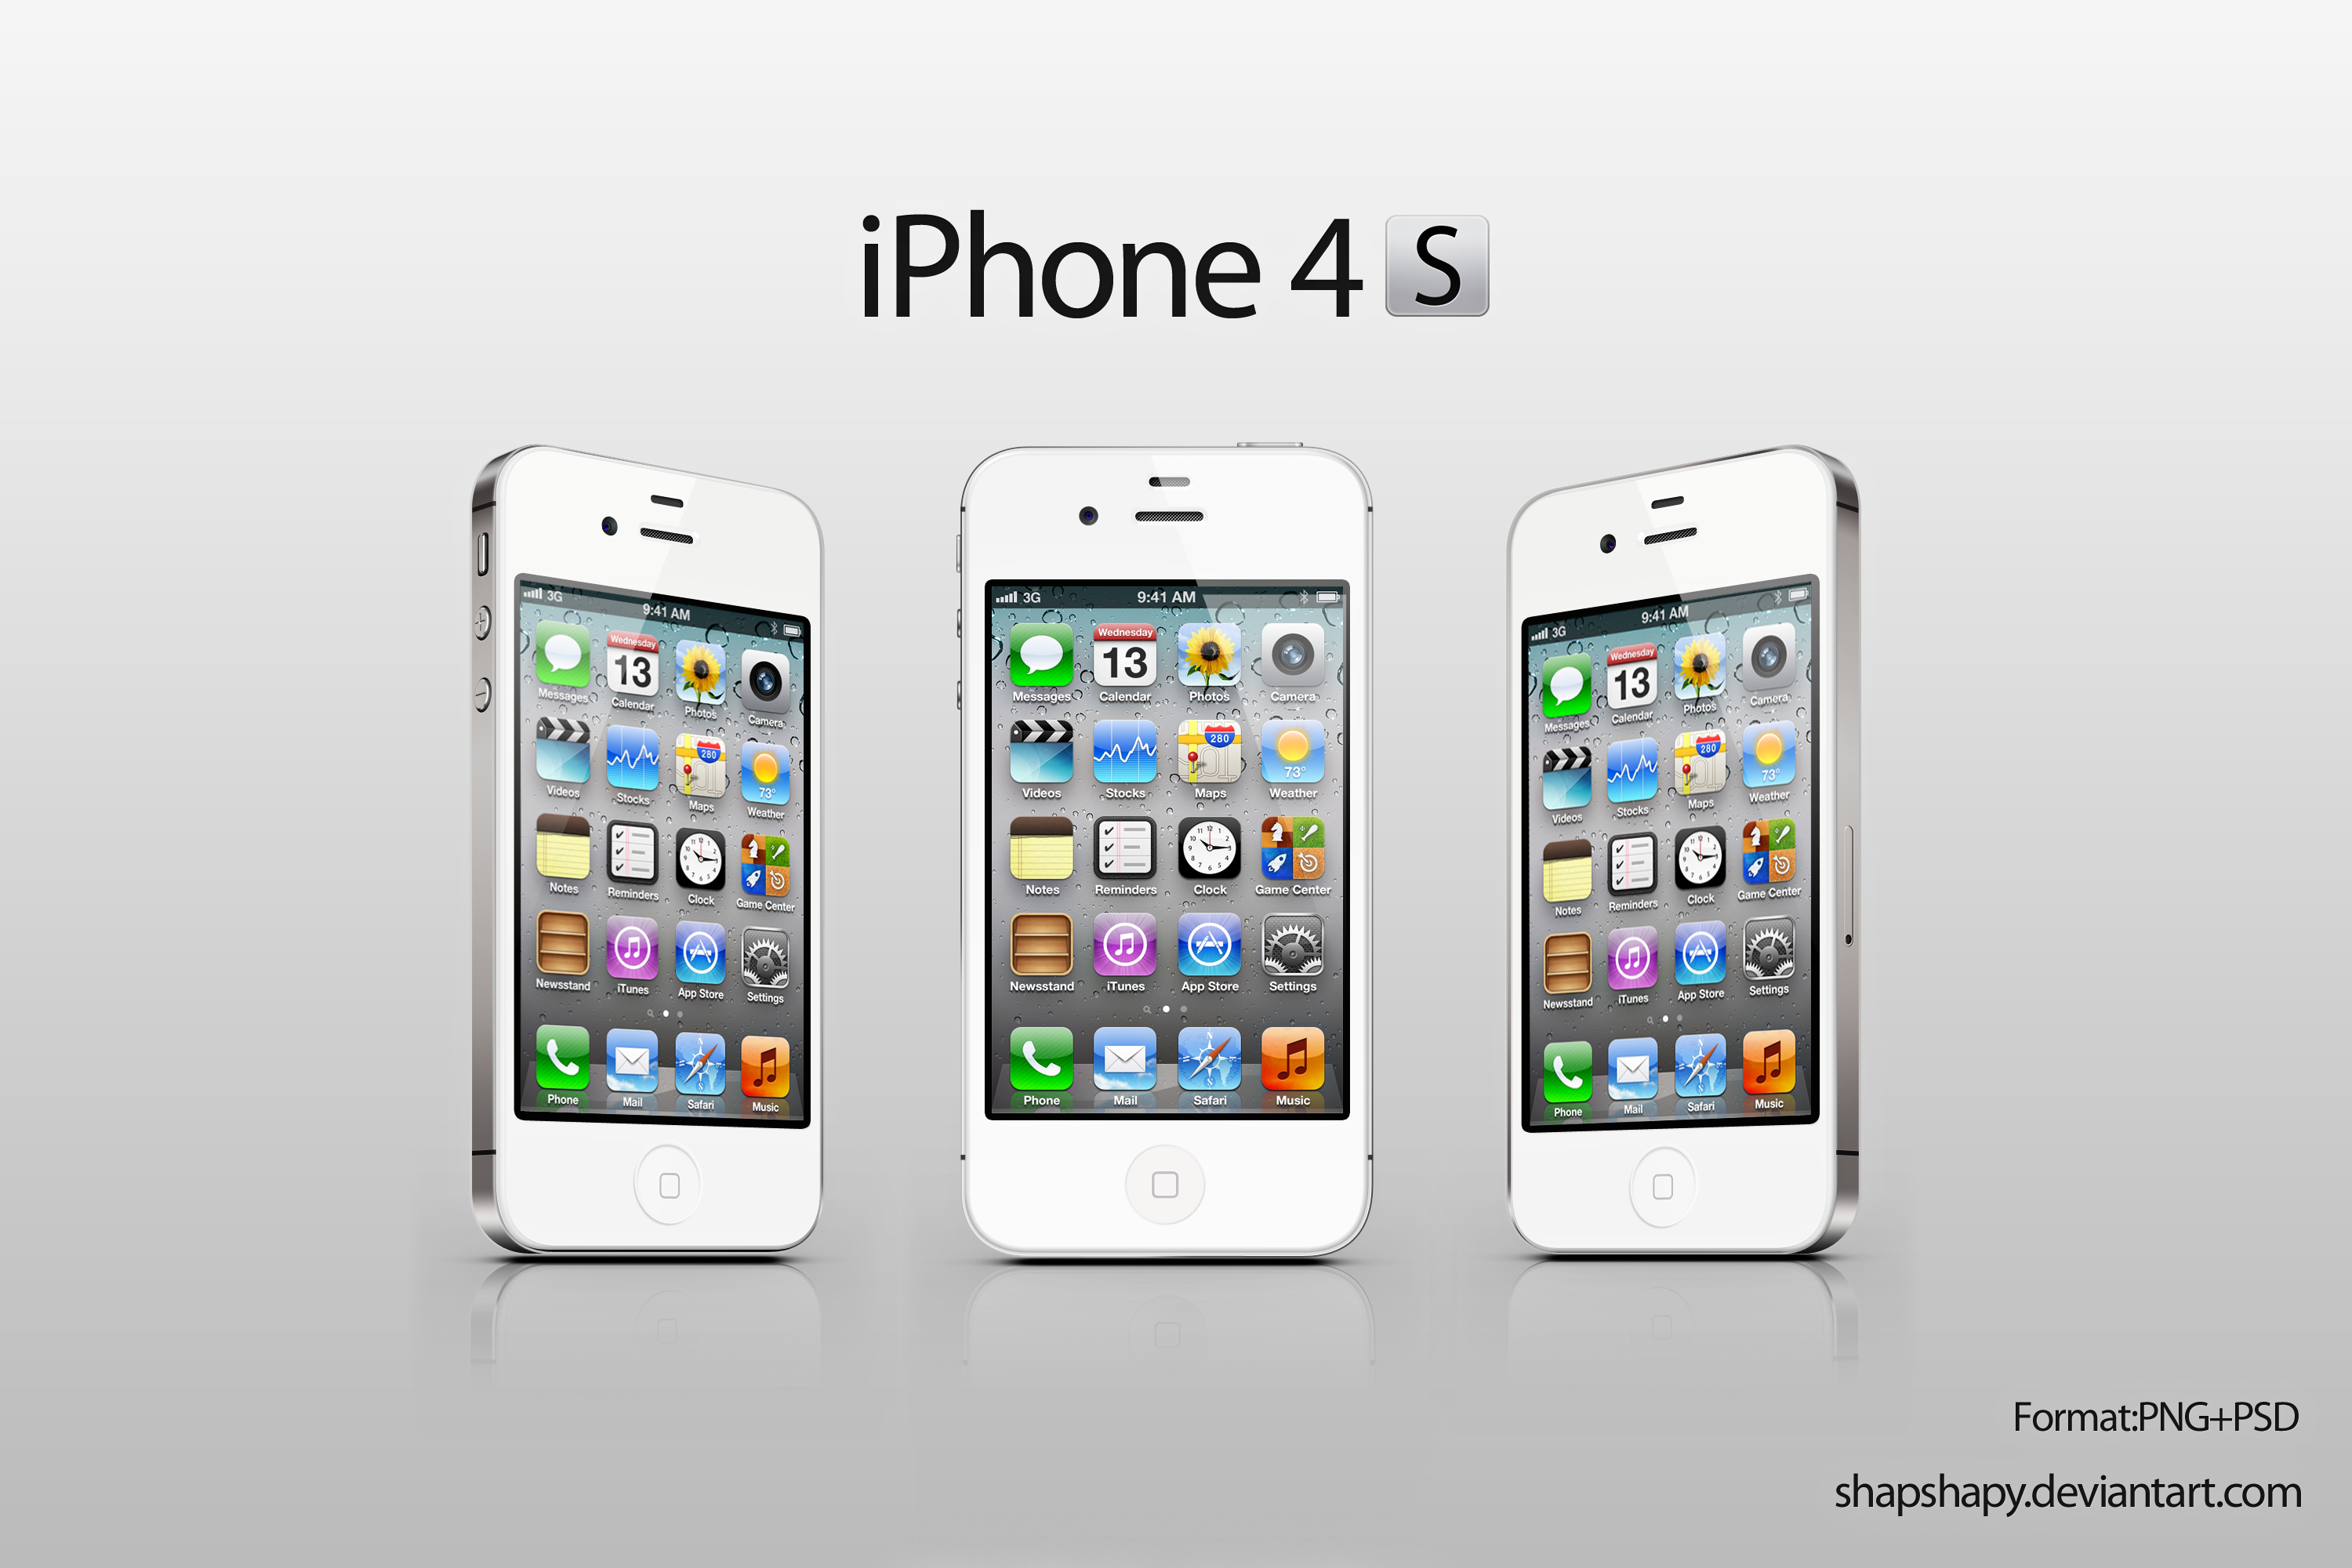 iphone 4s white iphone 4s white by shapshapy on deviantart 10943